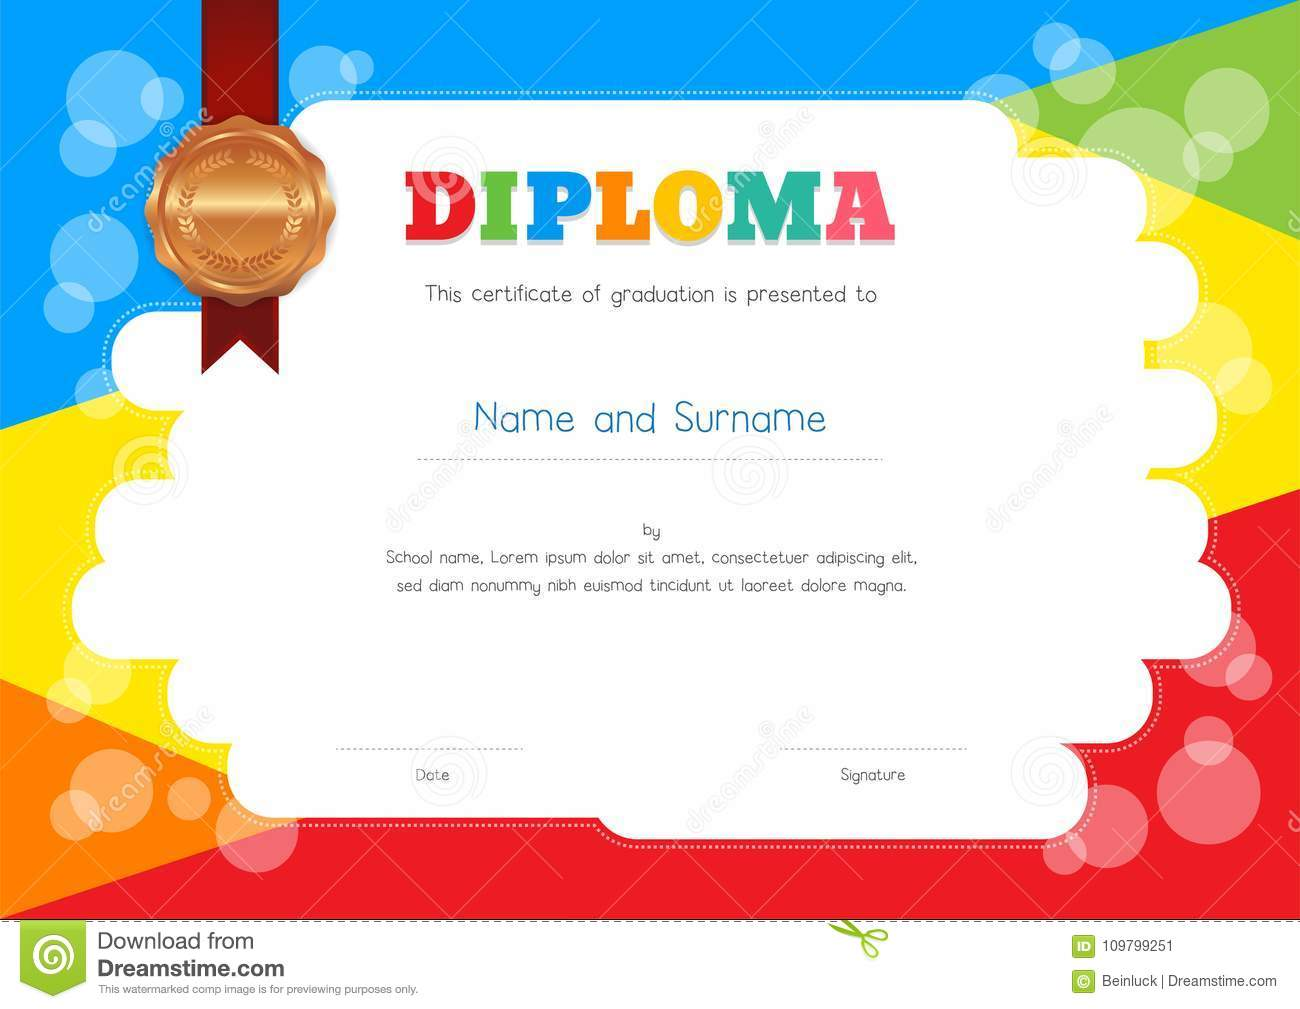 Kids Diploma or Certificate Template with Colorful Background For Free Printable Certificate Templates For Kids